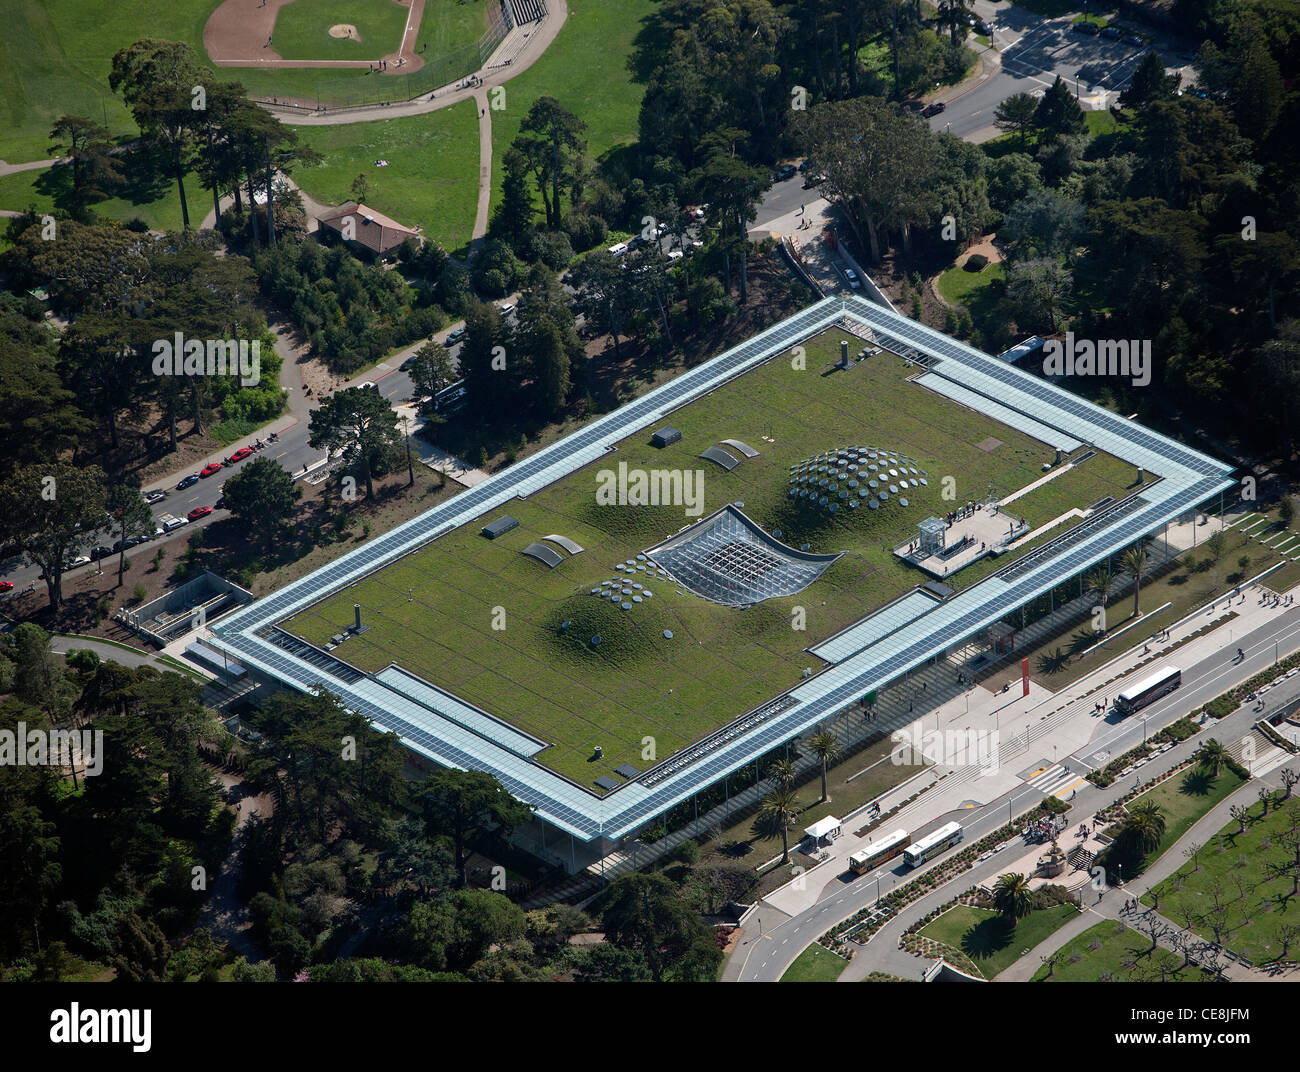 aerial photograph green roof, California Academy of Sciences museum Golden Gate Park San Francisco - Stock Image